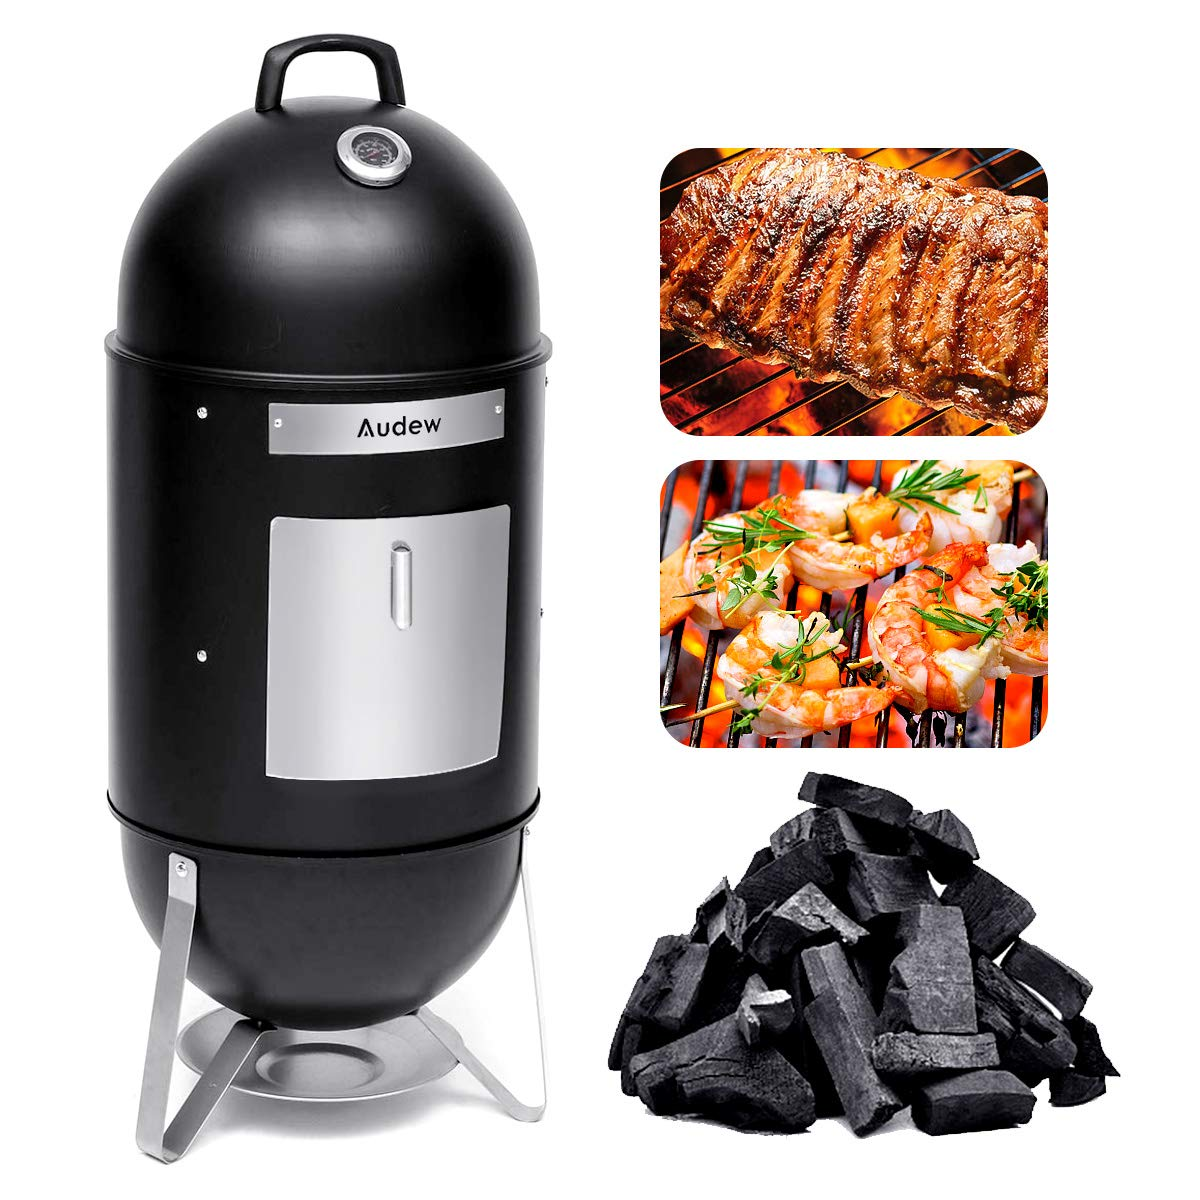 Audew Charcoal Smoker Grill Combo 18-Inch Vertical Smoked Turkey Grill BBQ Heat Control Outdoor Picnic Camping